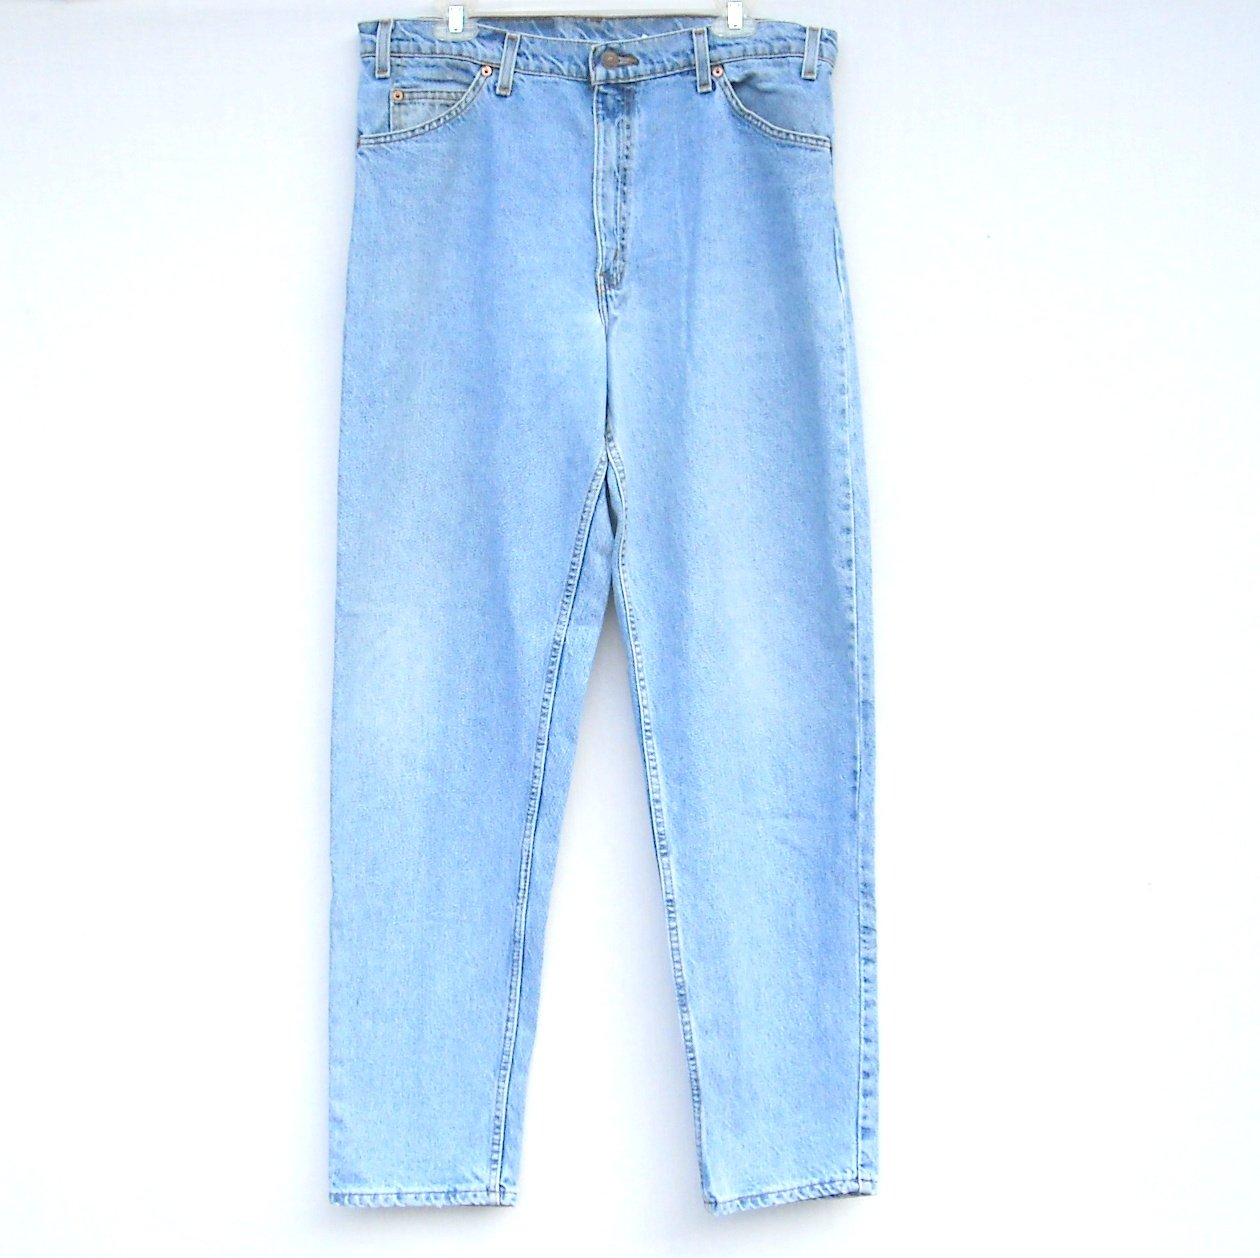 Levi Strauss 550 Relaxed Tapered Blue Jeans Size 36 X 34